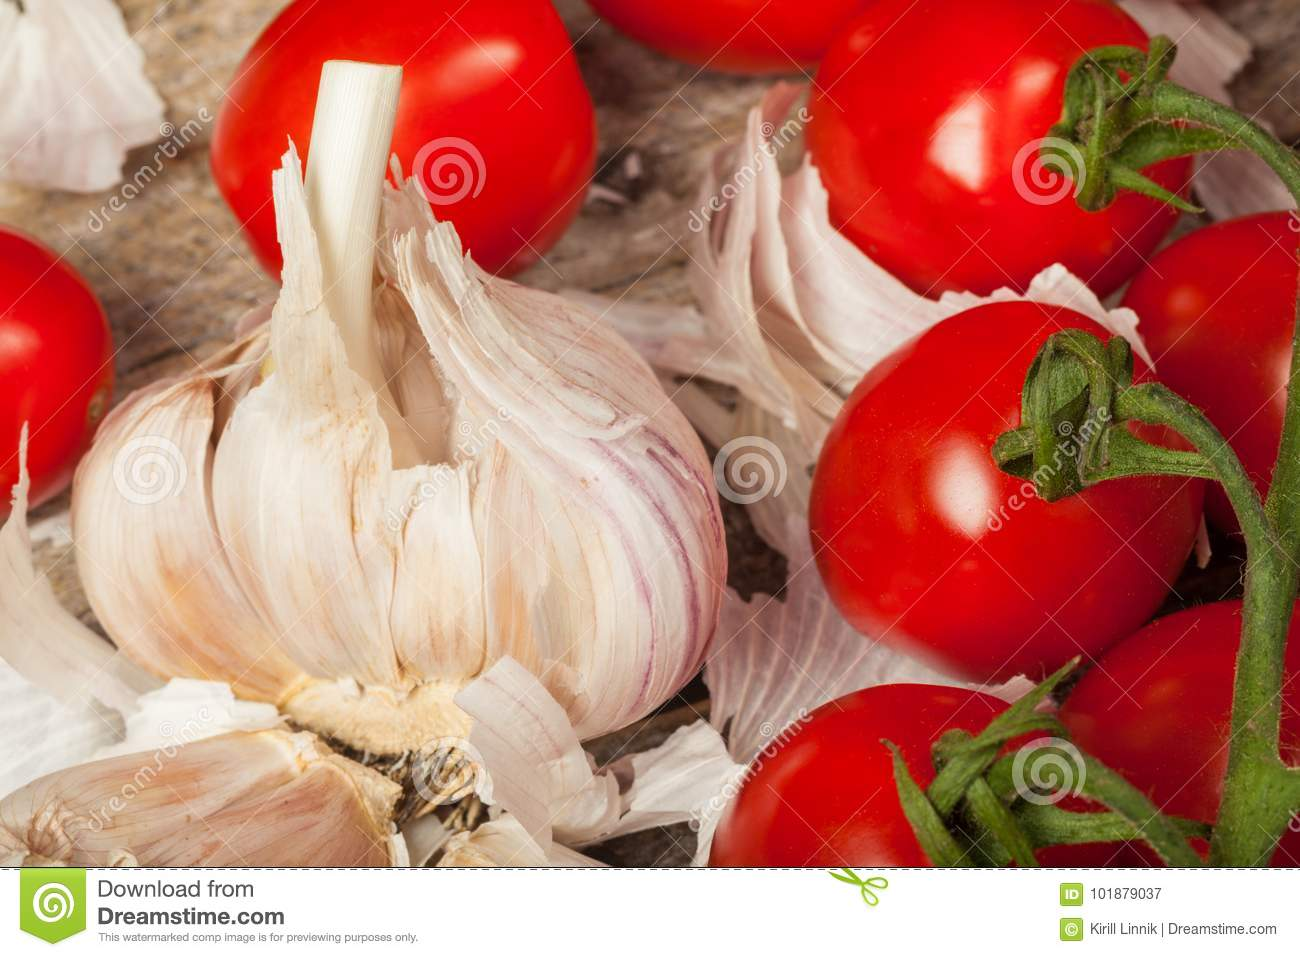 Download Tomatoes and garlic stock image. Image of mediterranean - 101879037